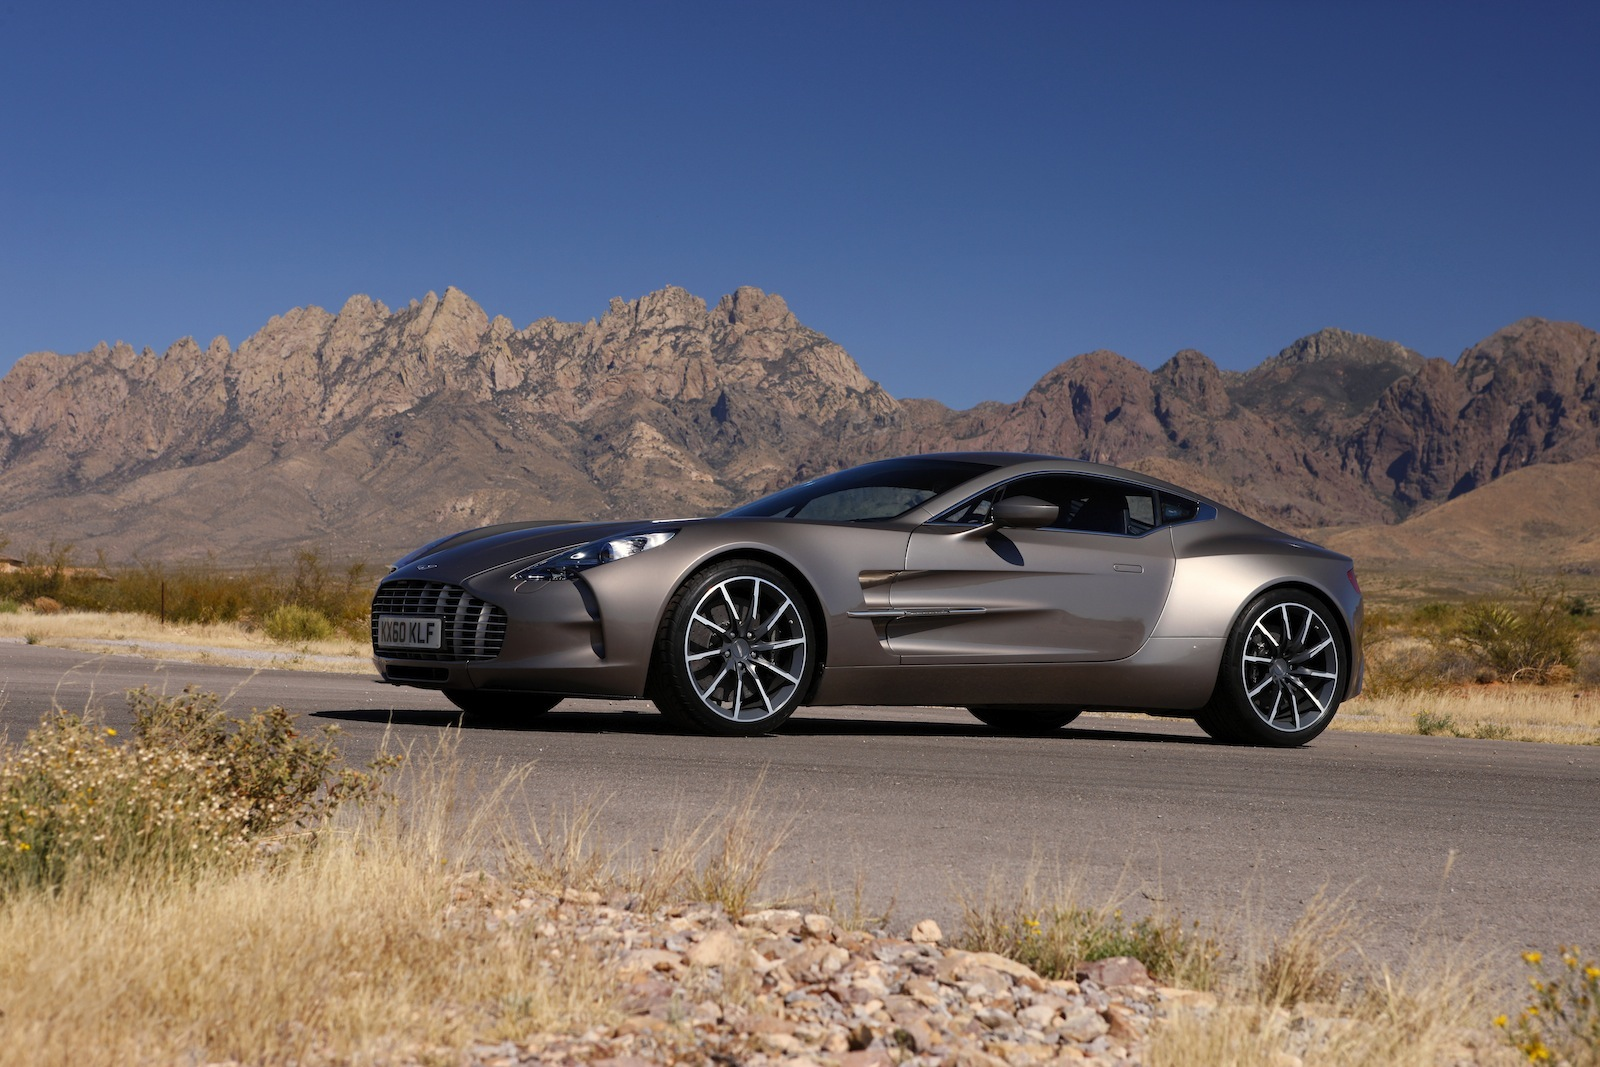 Aston Martin One 77 Supercar Is Officially Sold Out